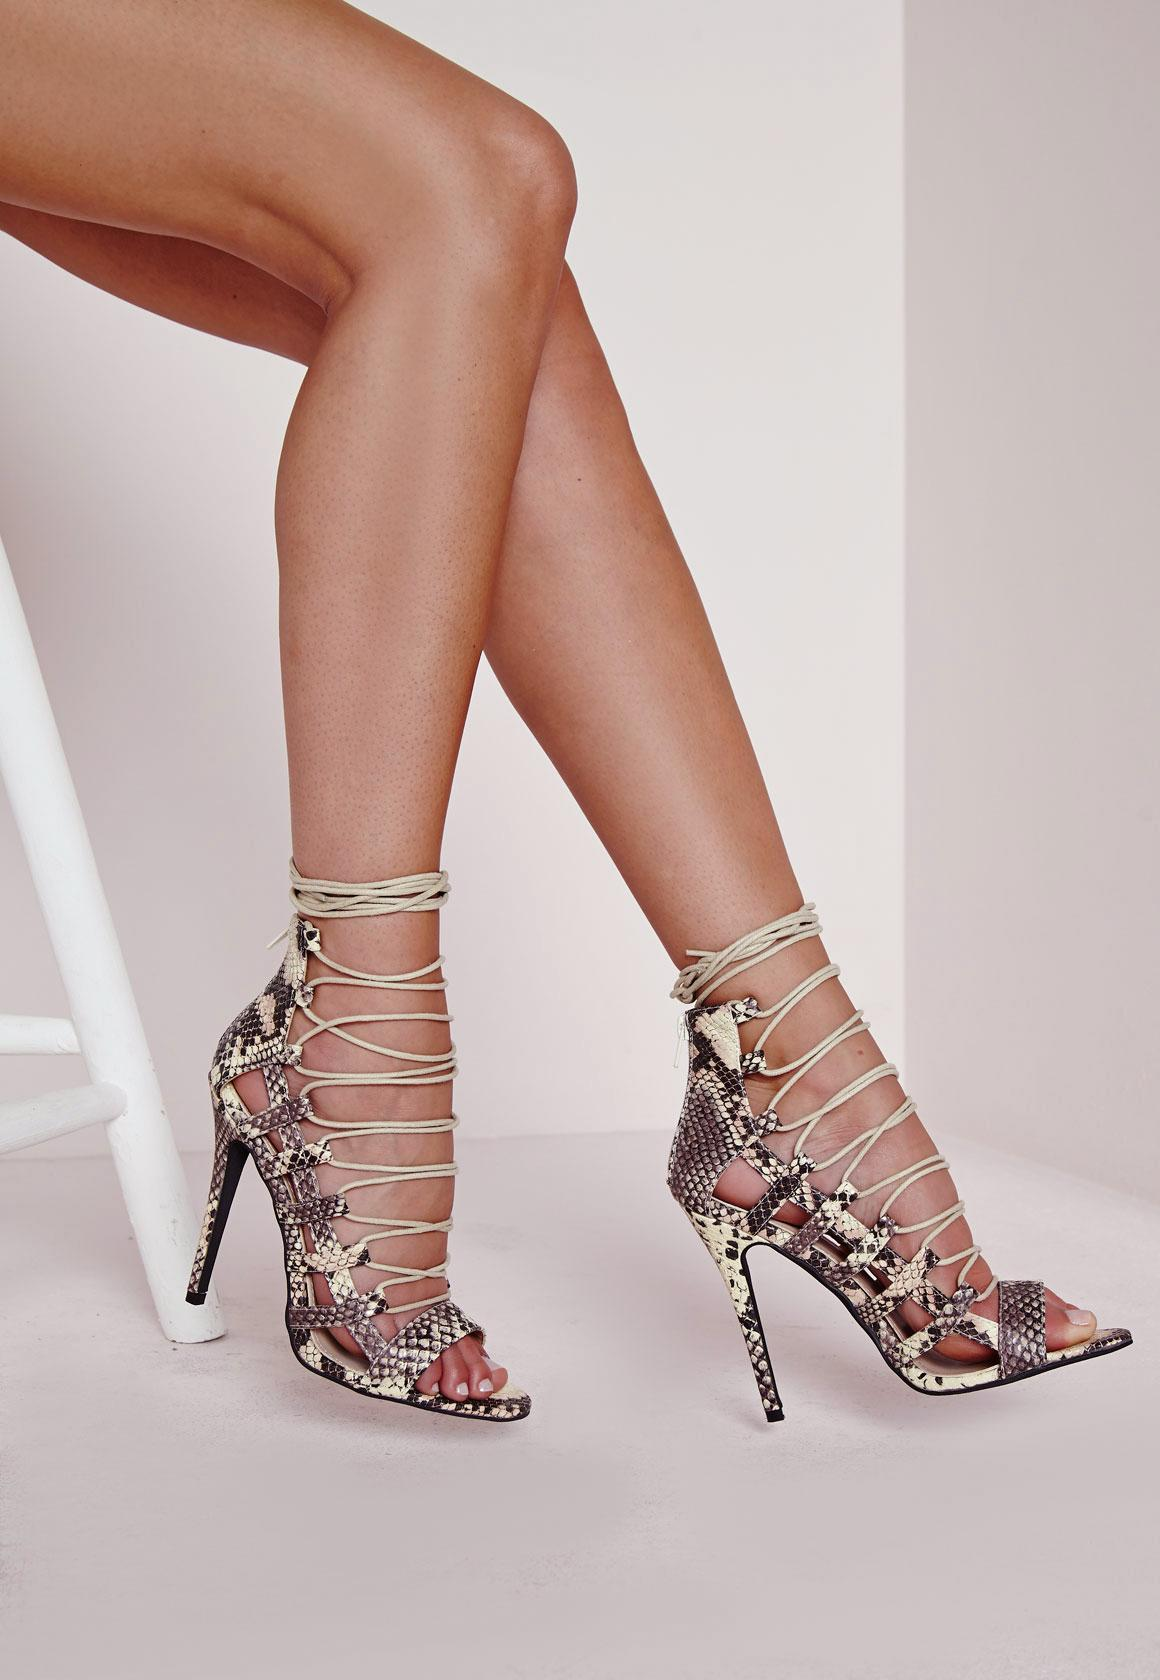 Peep Toe Lace Up Heeled Sandals Snakeskin | Missguided